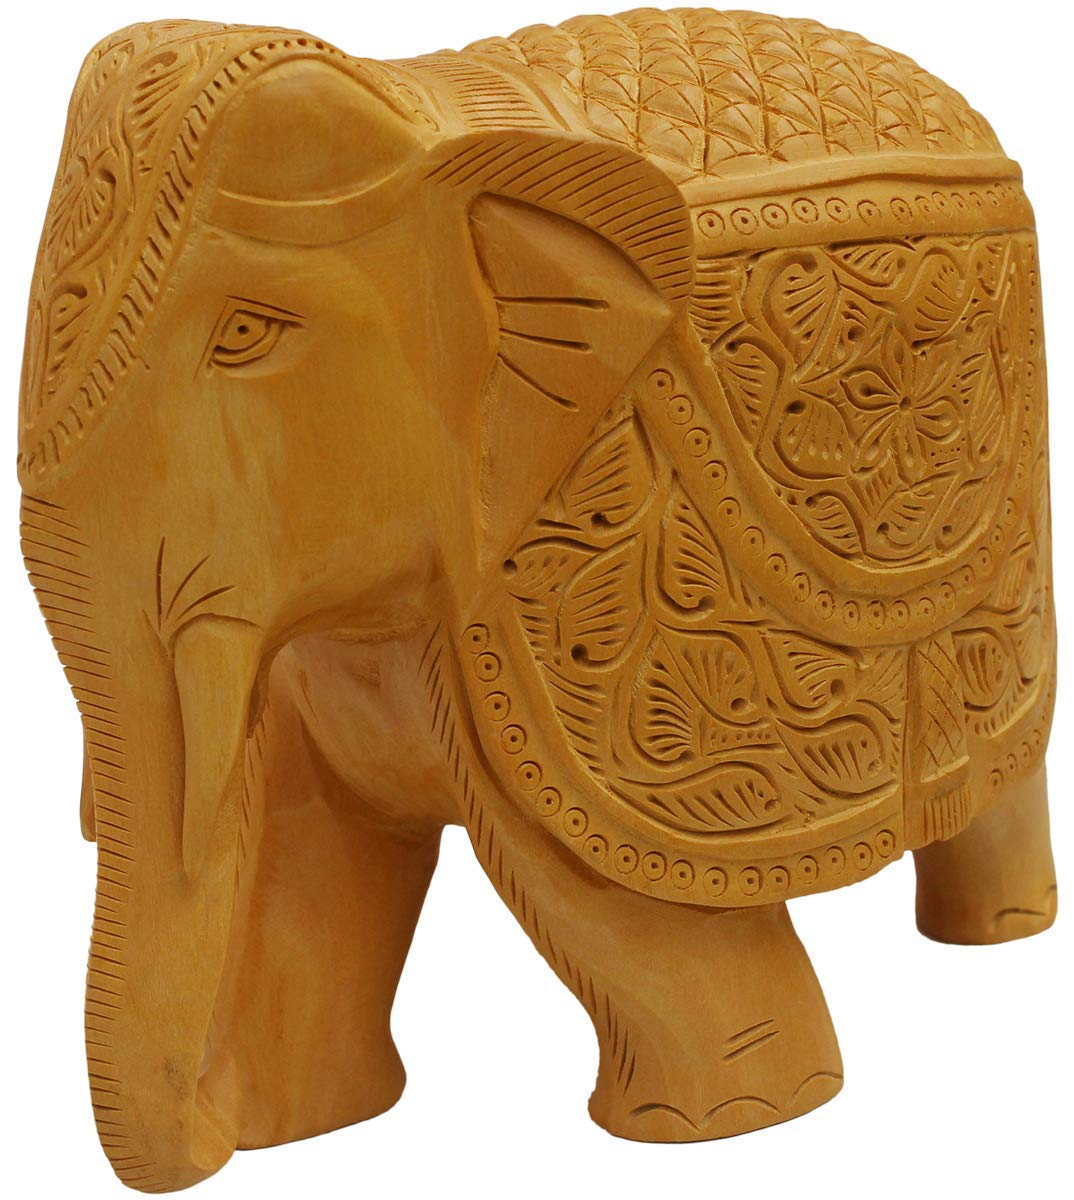 Buy Greentouch Crafts Big Large Size Wooden Handicraft Home Decor Elephant Showpiece 7 Inch Large Size With Antique Carving Work Online At Low Prices In India Amazon In